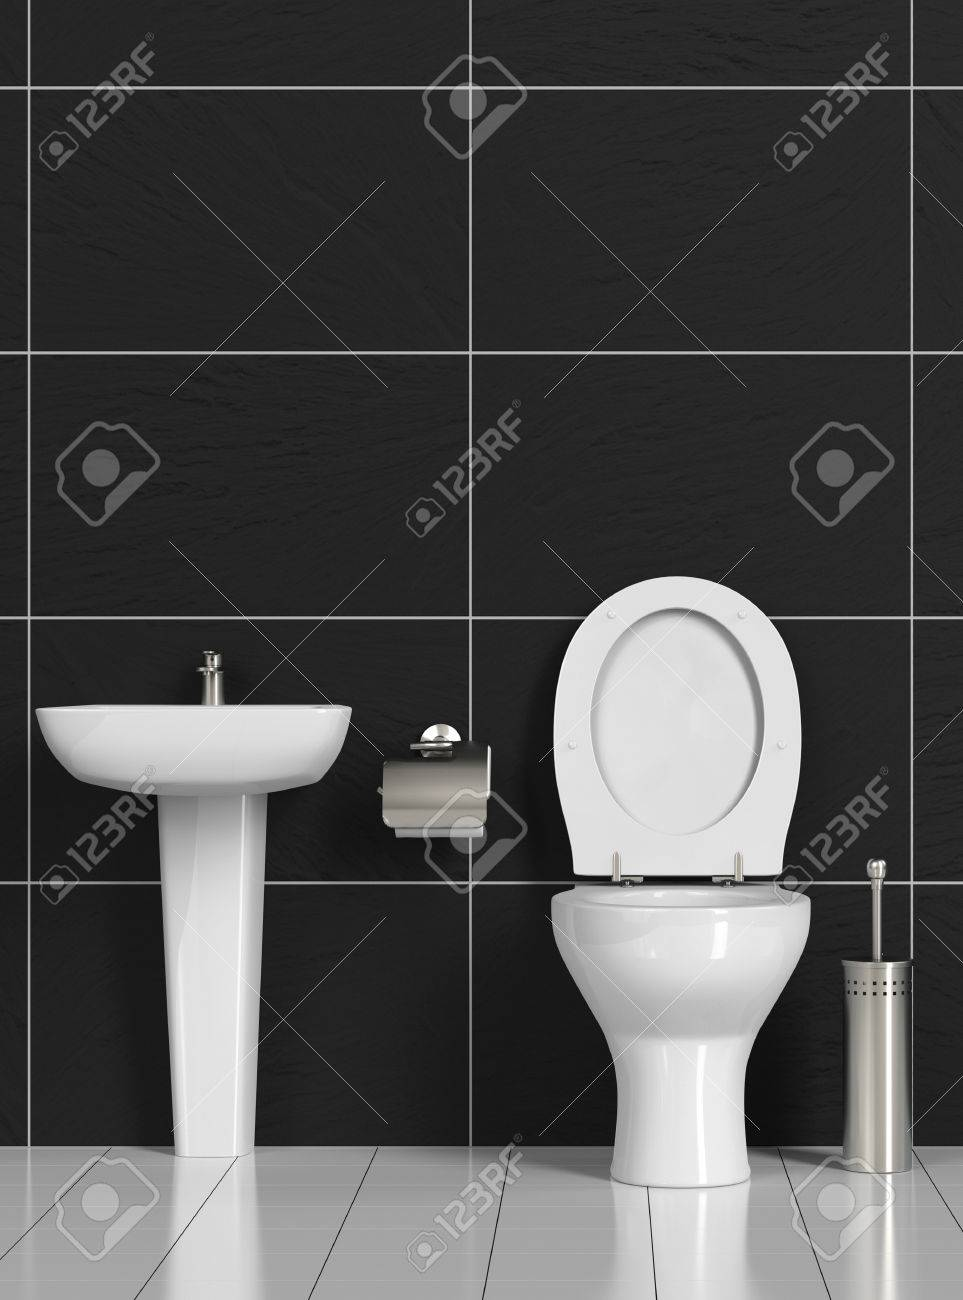 Clean WC With Sink And Toilet And Black Tiles 3D Rendering Stock